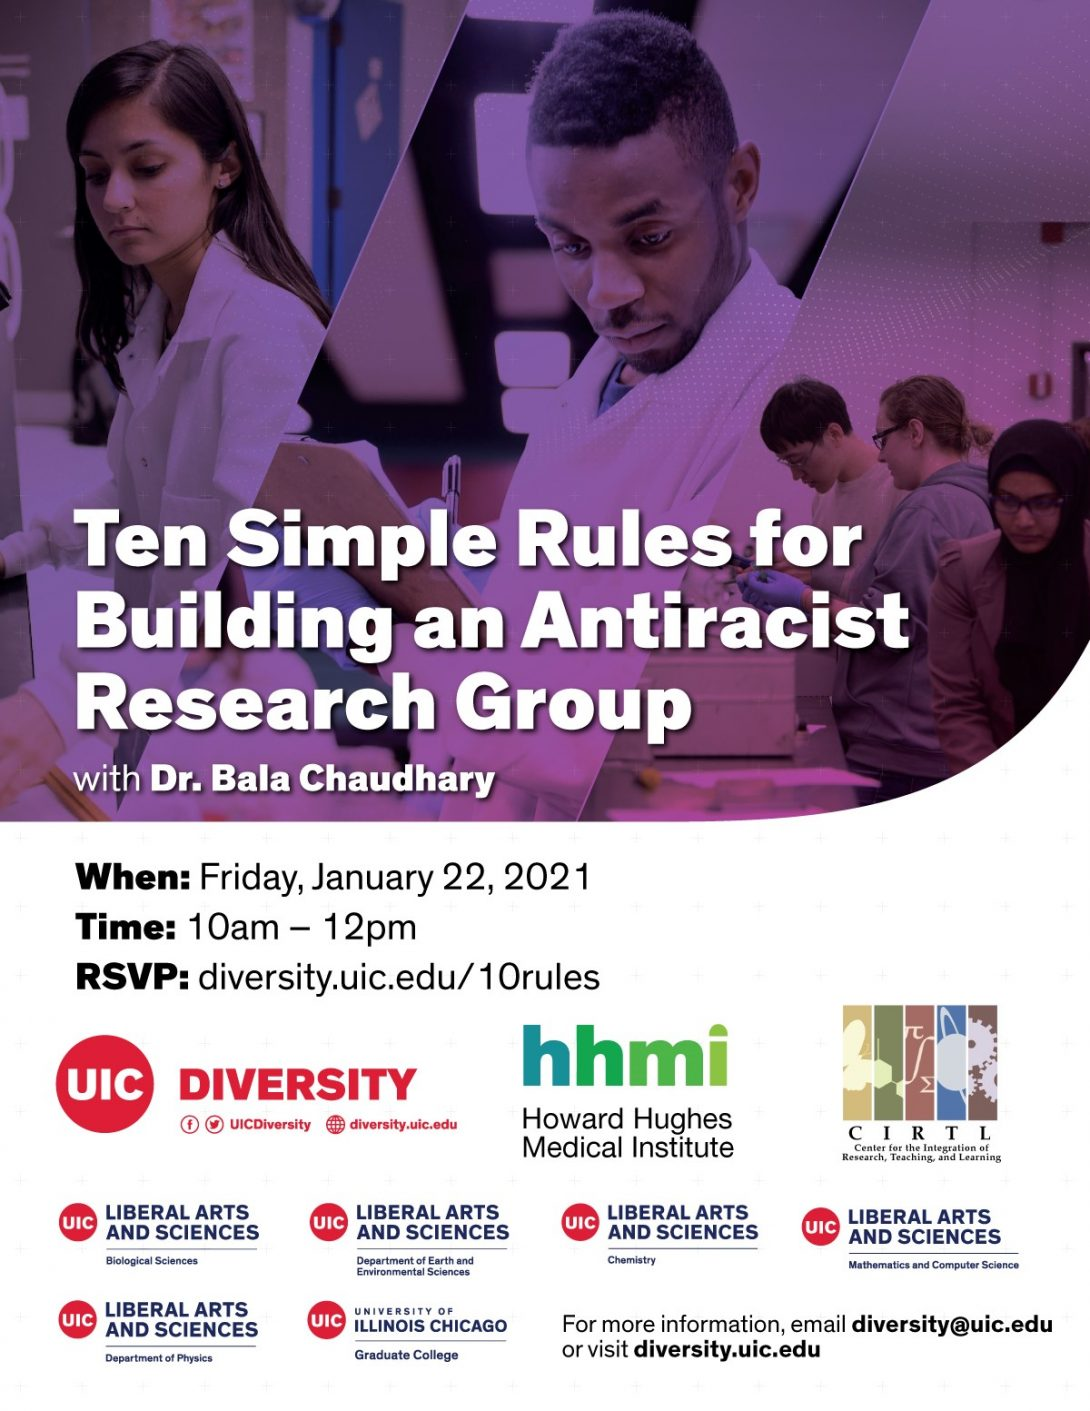 Ten Simple Rules for Building an Antiracist Research Group - RSVP diversity.uic.edu/10rules